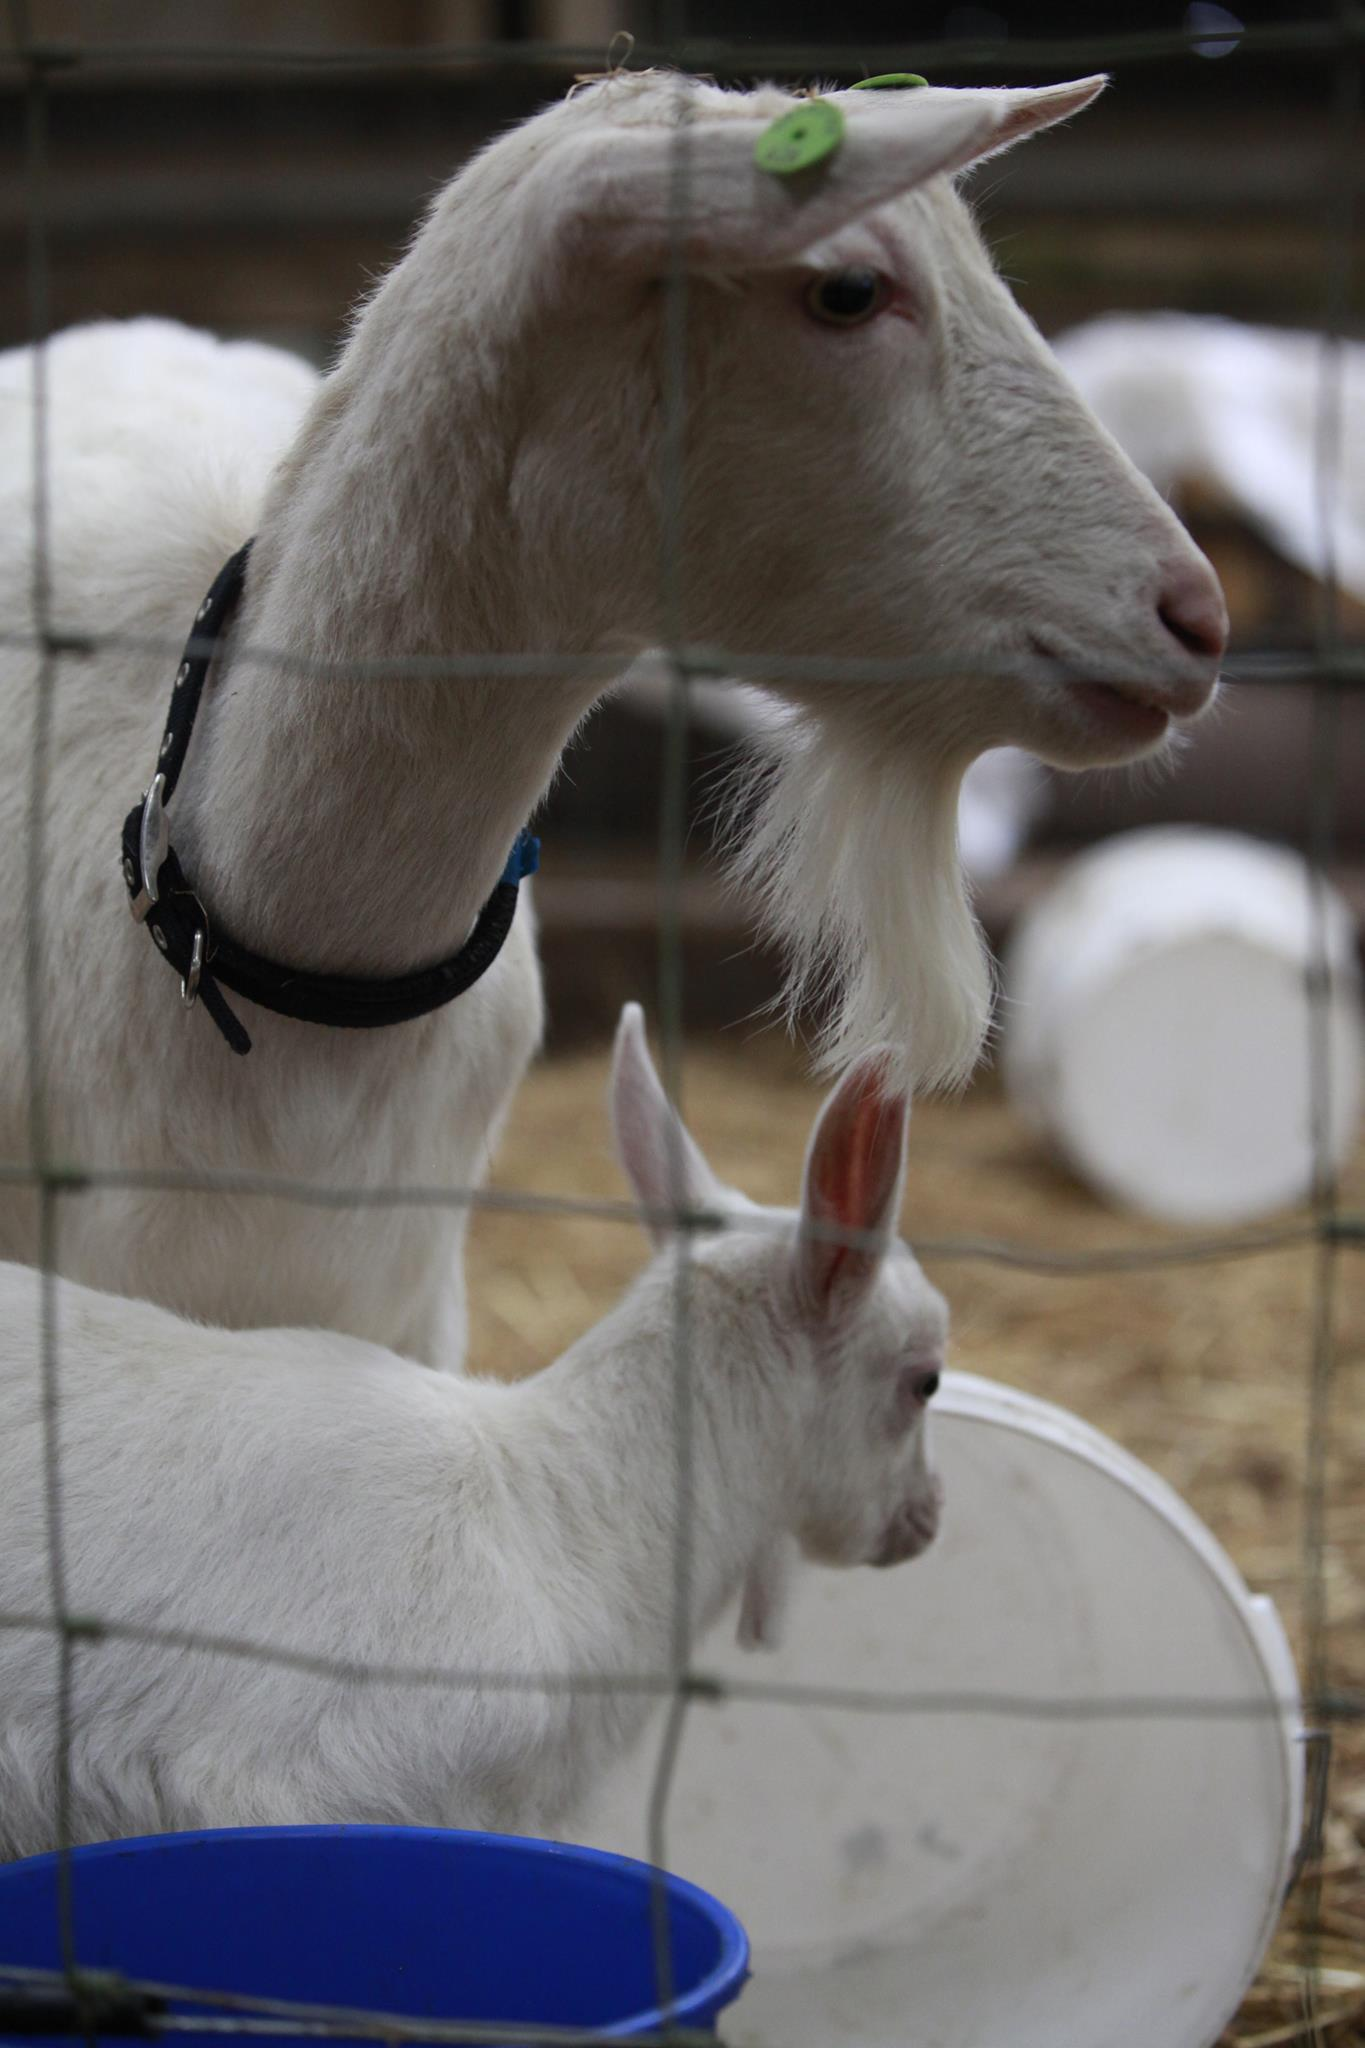 Our goats